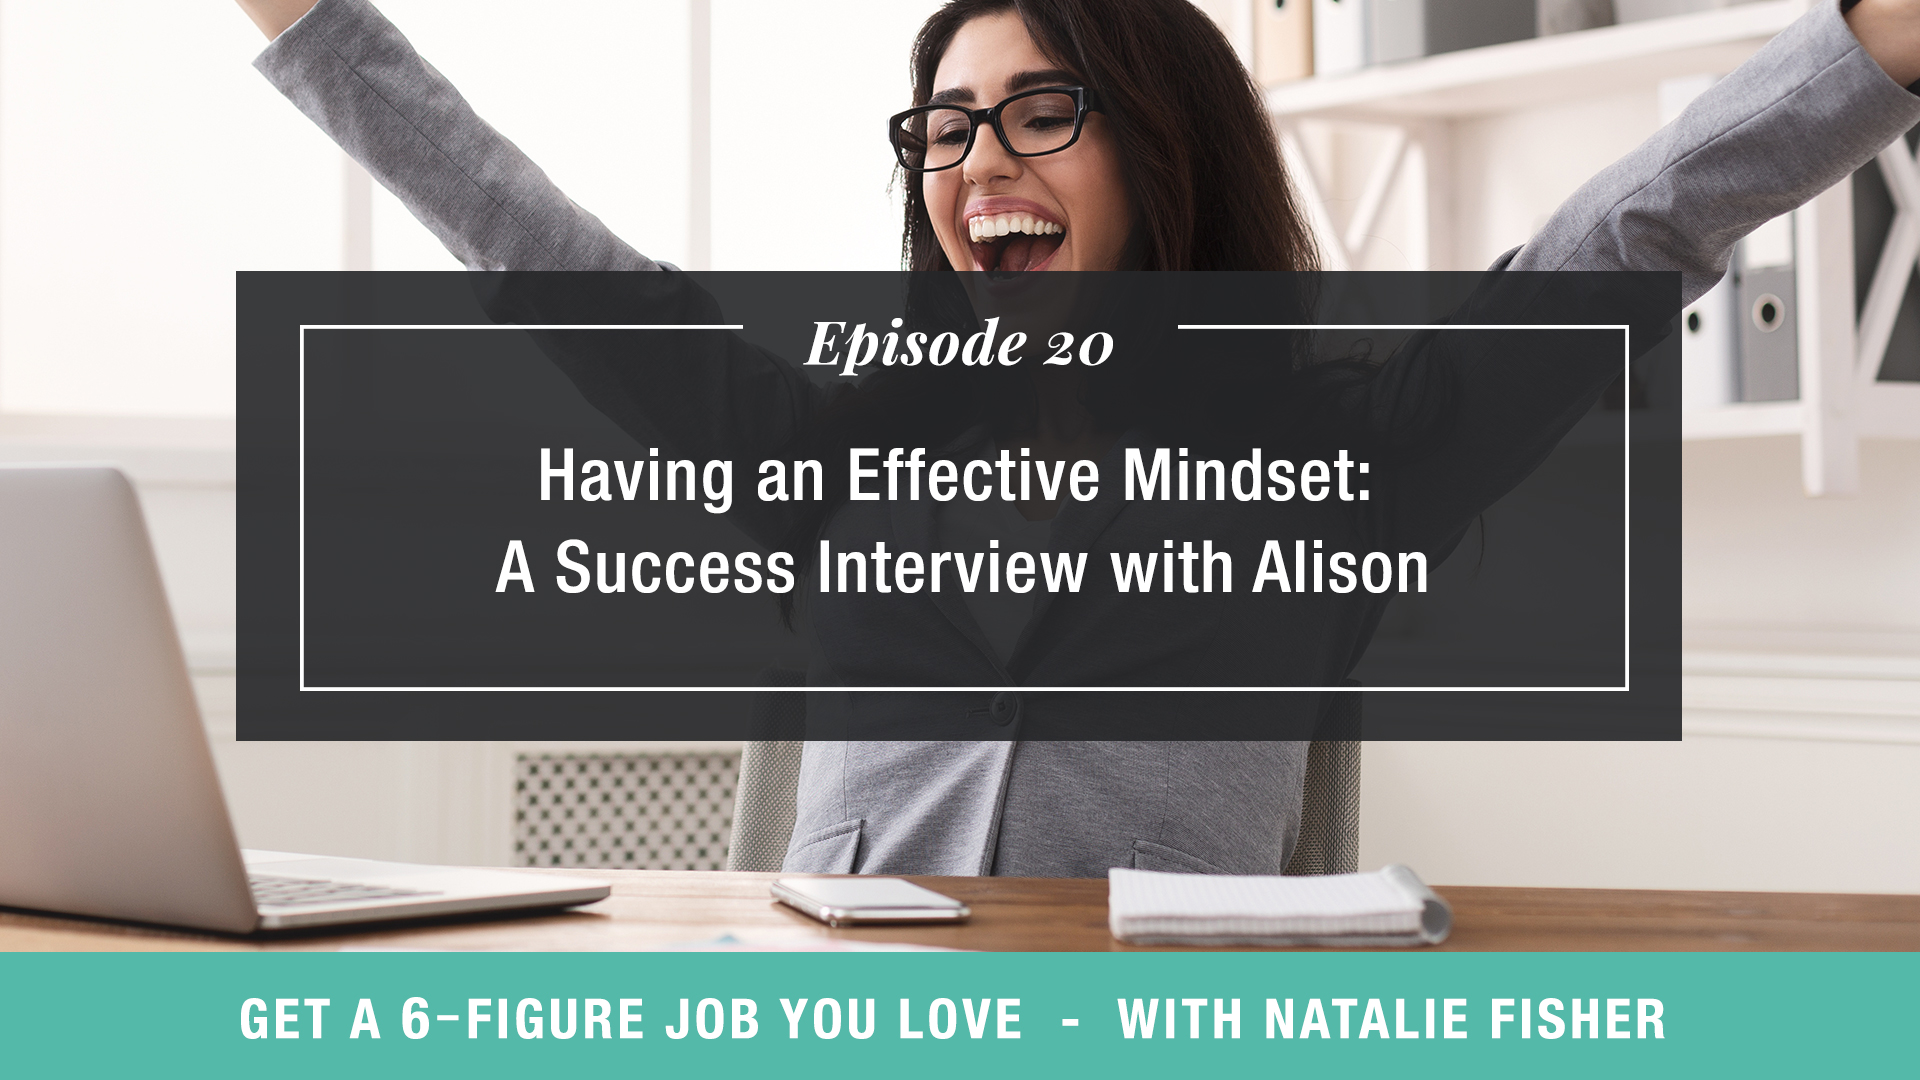 Having an Effective Mindset: A Success Interview with Alison